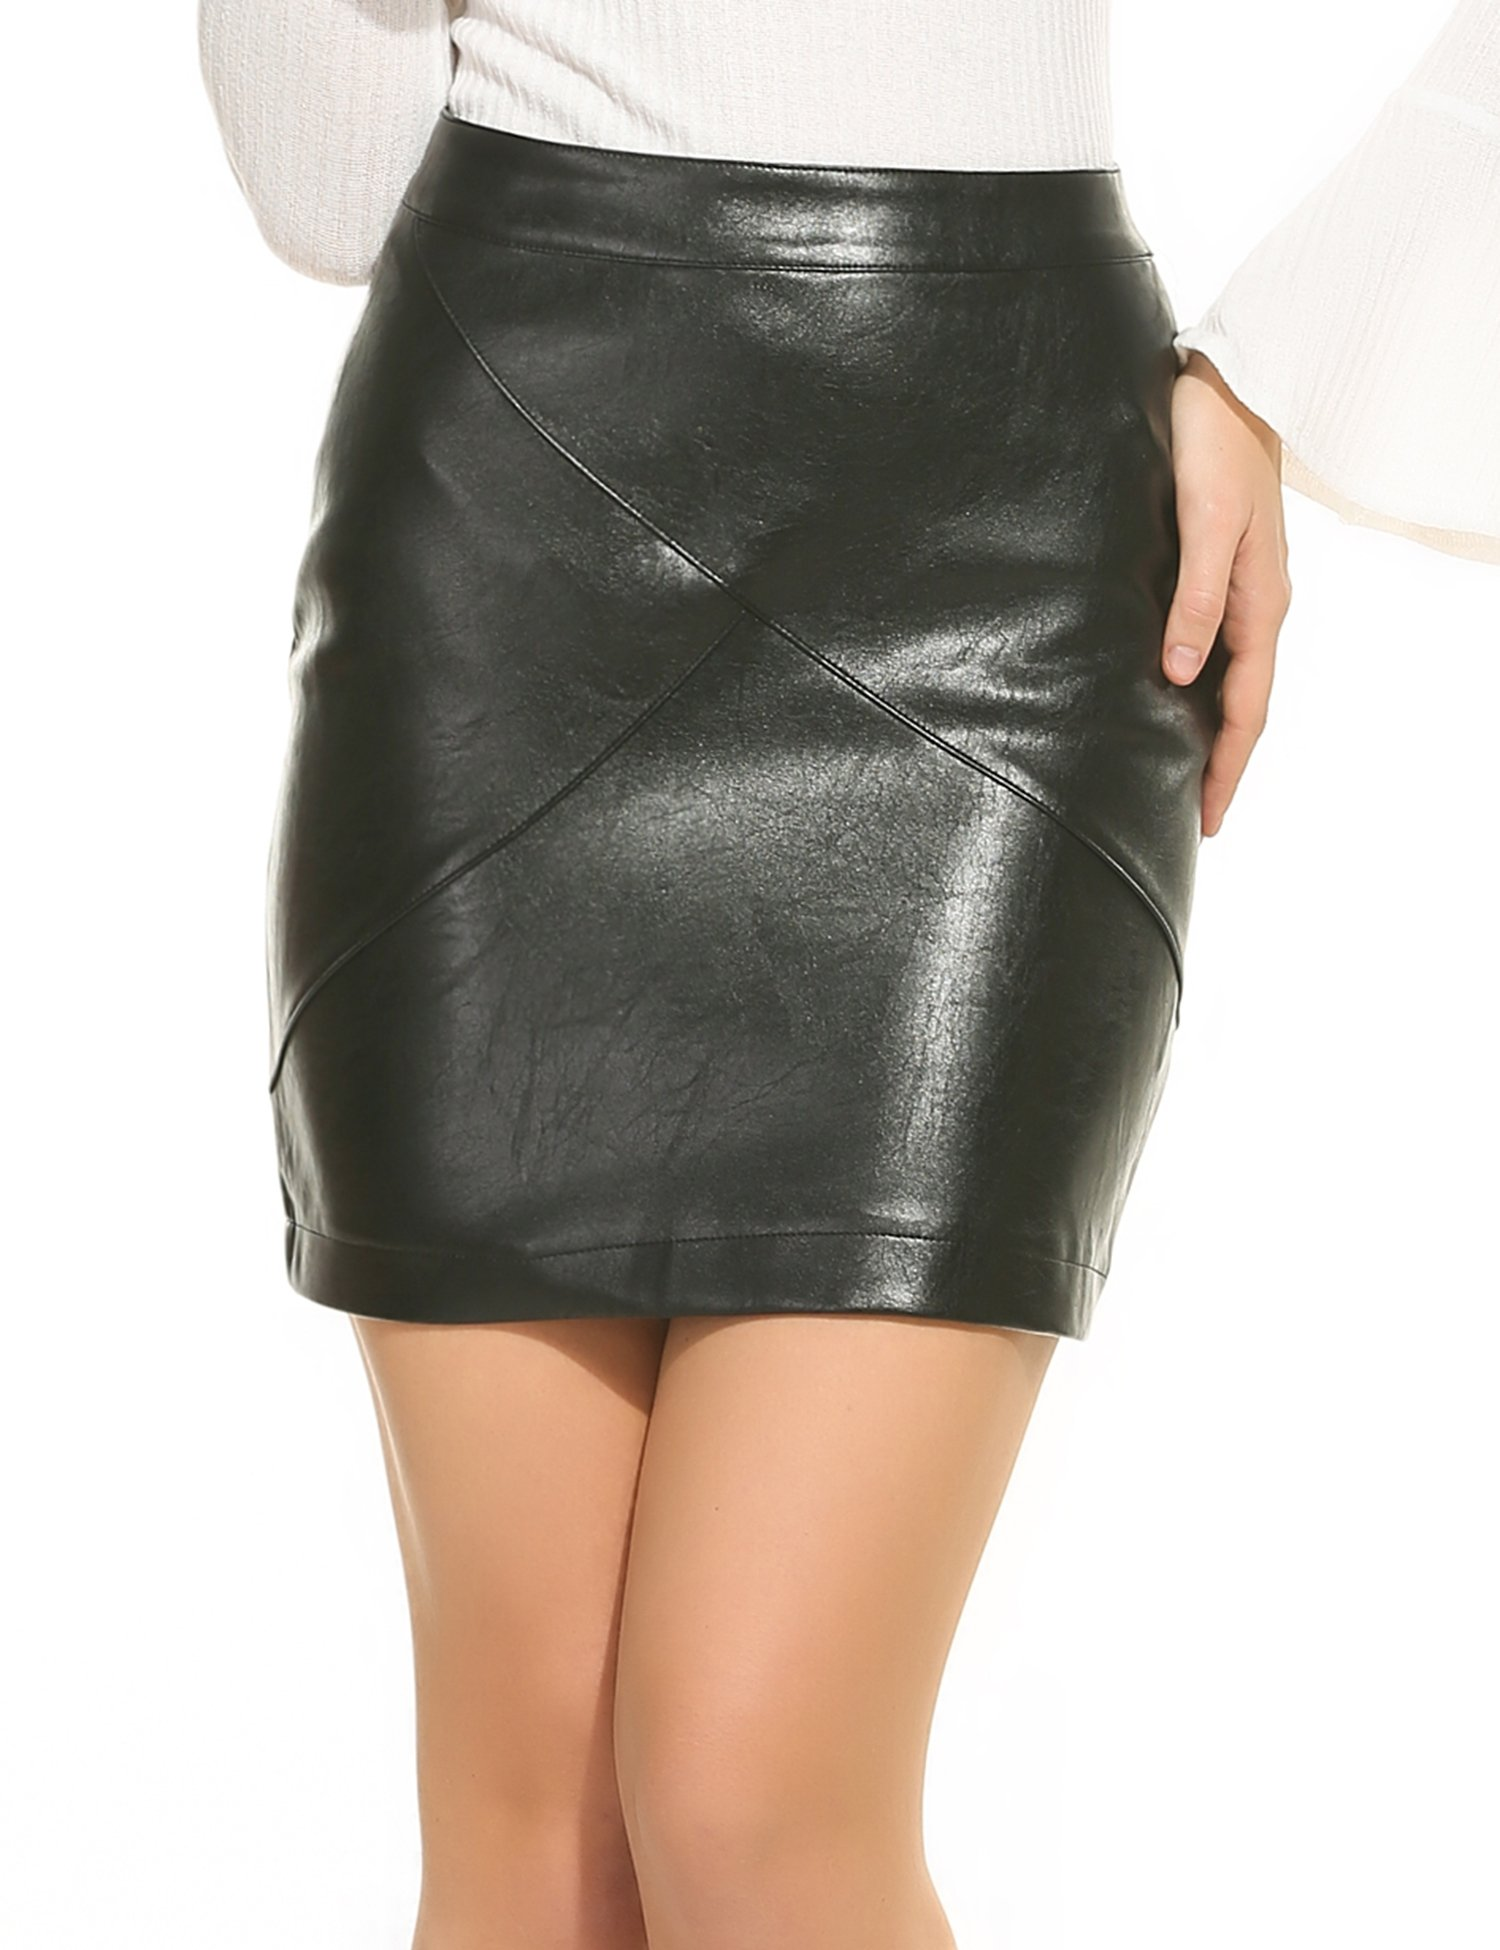 Zeagoo Women Basic Versatile Faux Leather Bodycon High Waisted Pencil Skirt, Black, Small